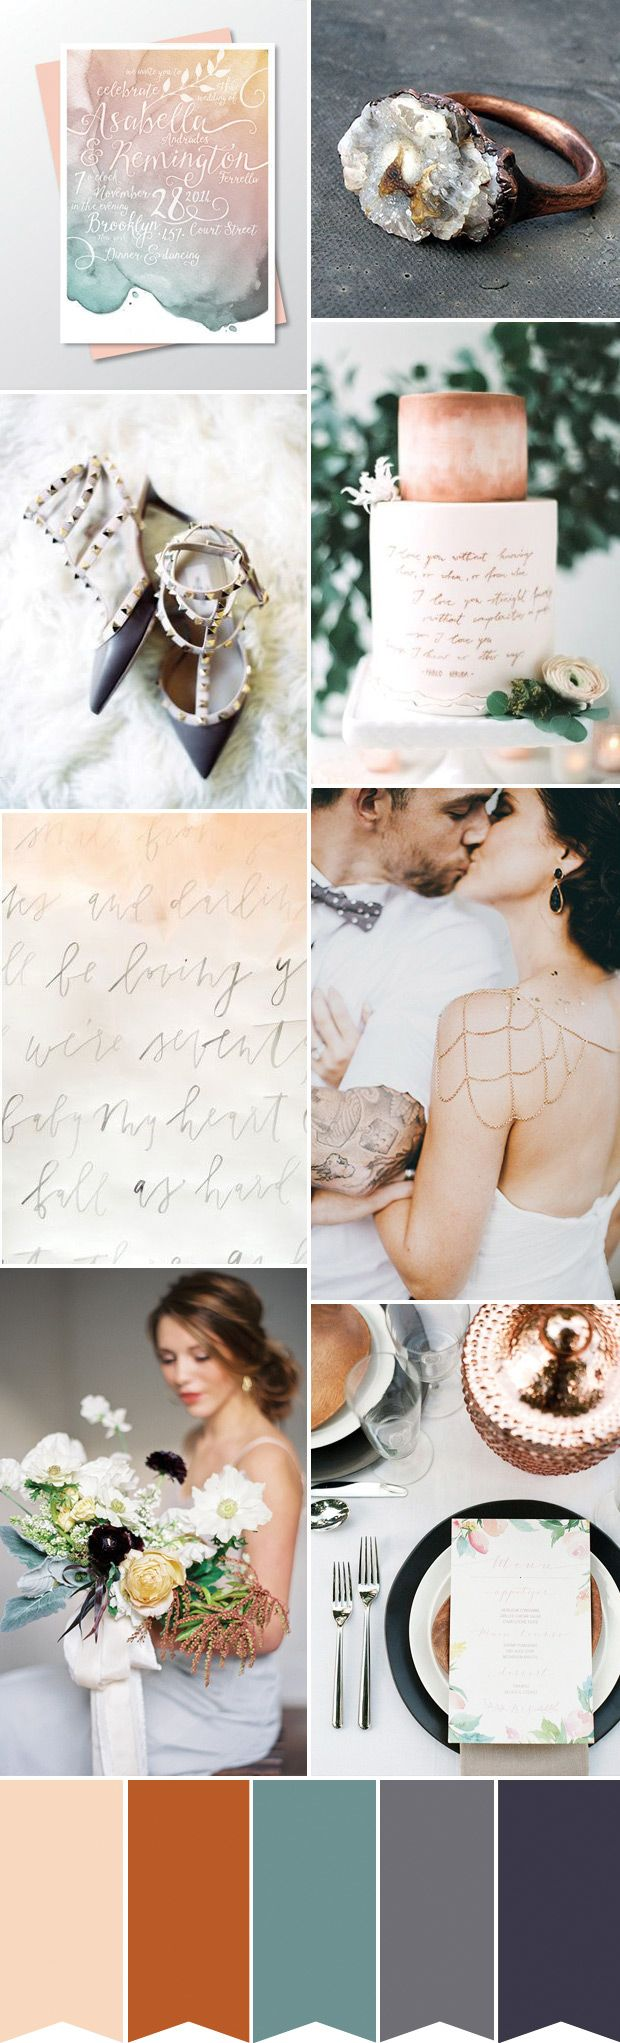 Contemporary and Chic | Copper and Watercolor Wedding Inspiration | see how to create the look on www.onefabday.com